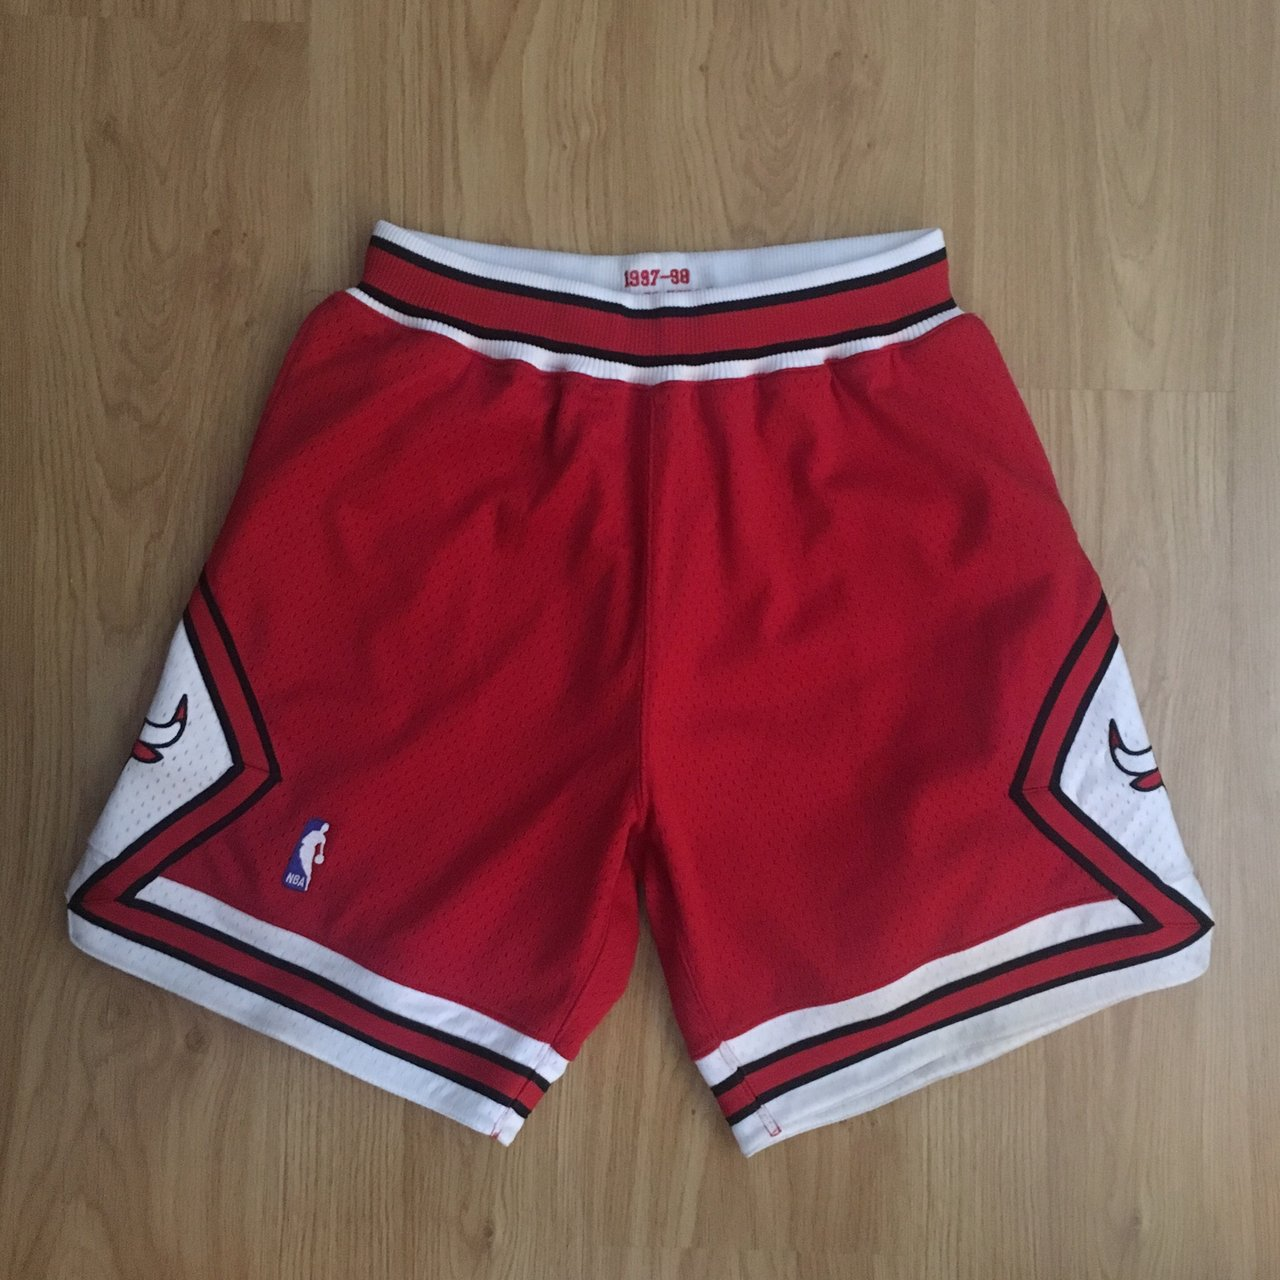 Mitchell   Ness Chicago Bulls Shorts Size M These shorts to - Depop e7c52583e511